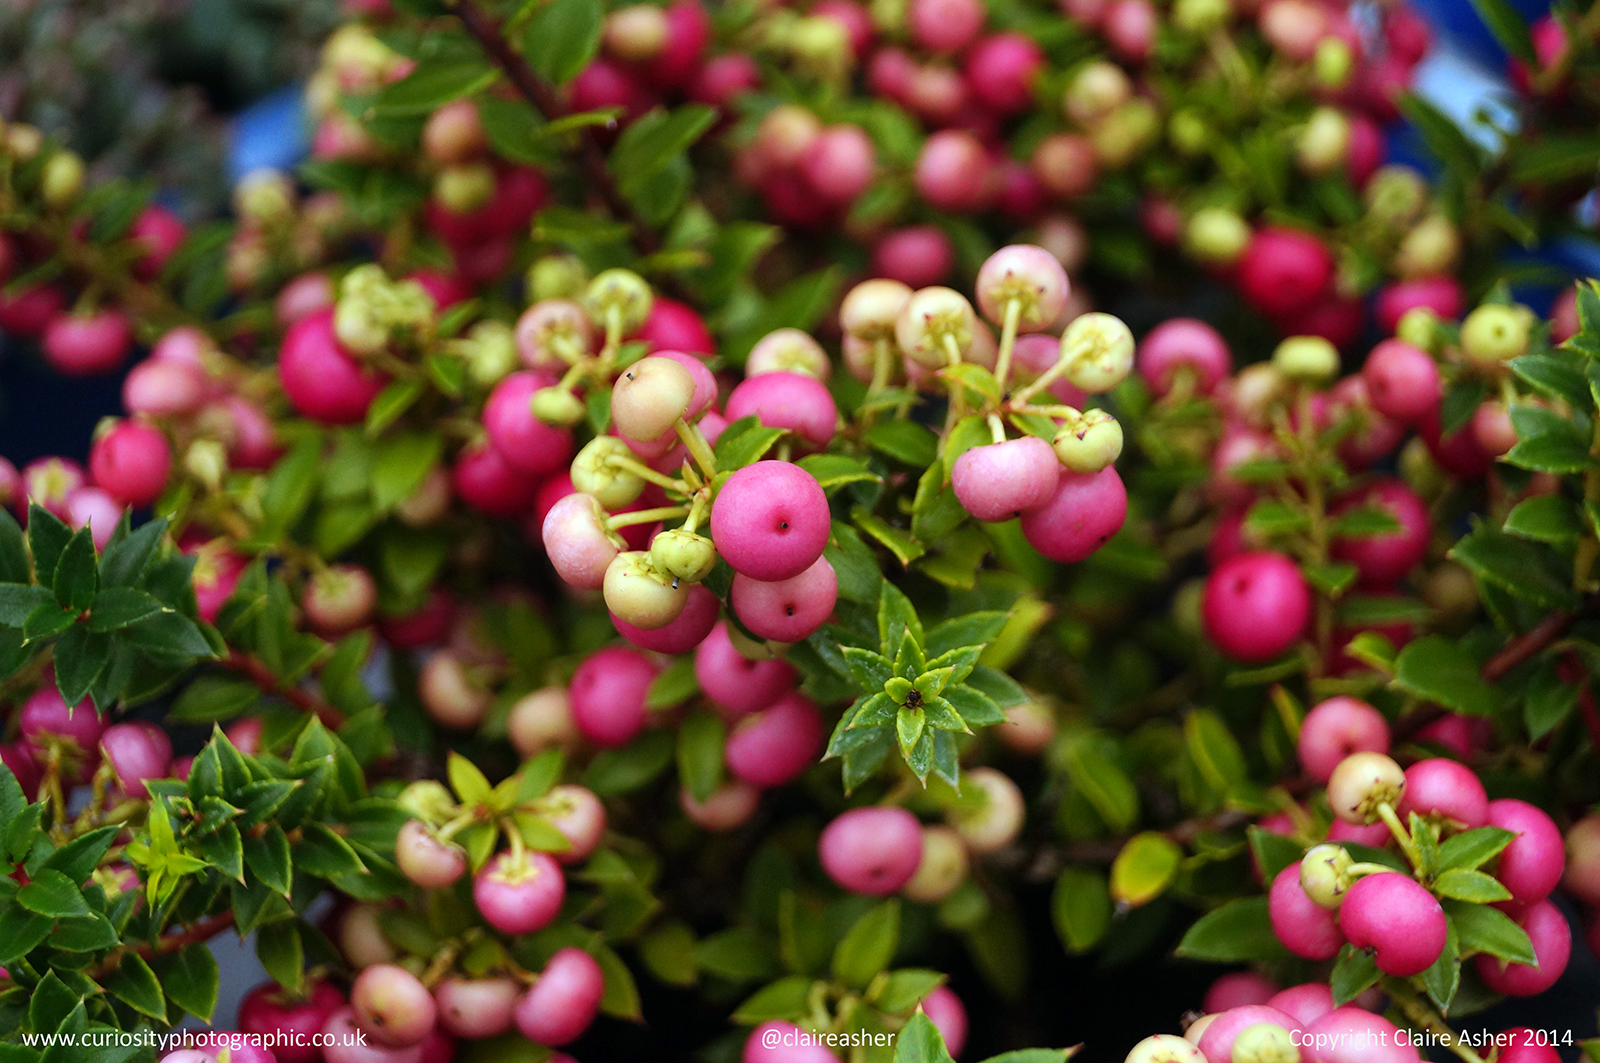 A bush with pink berries photographed in Berkshire in 2014.